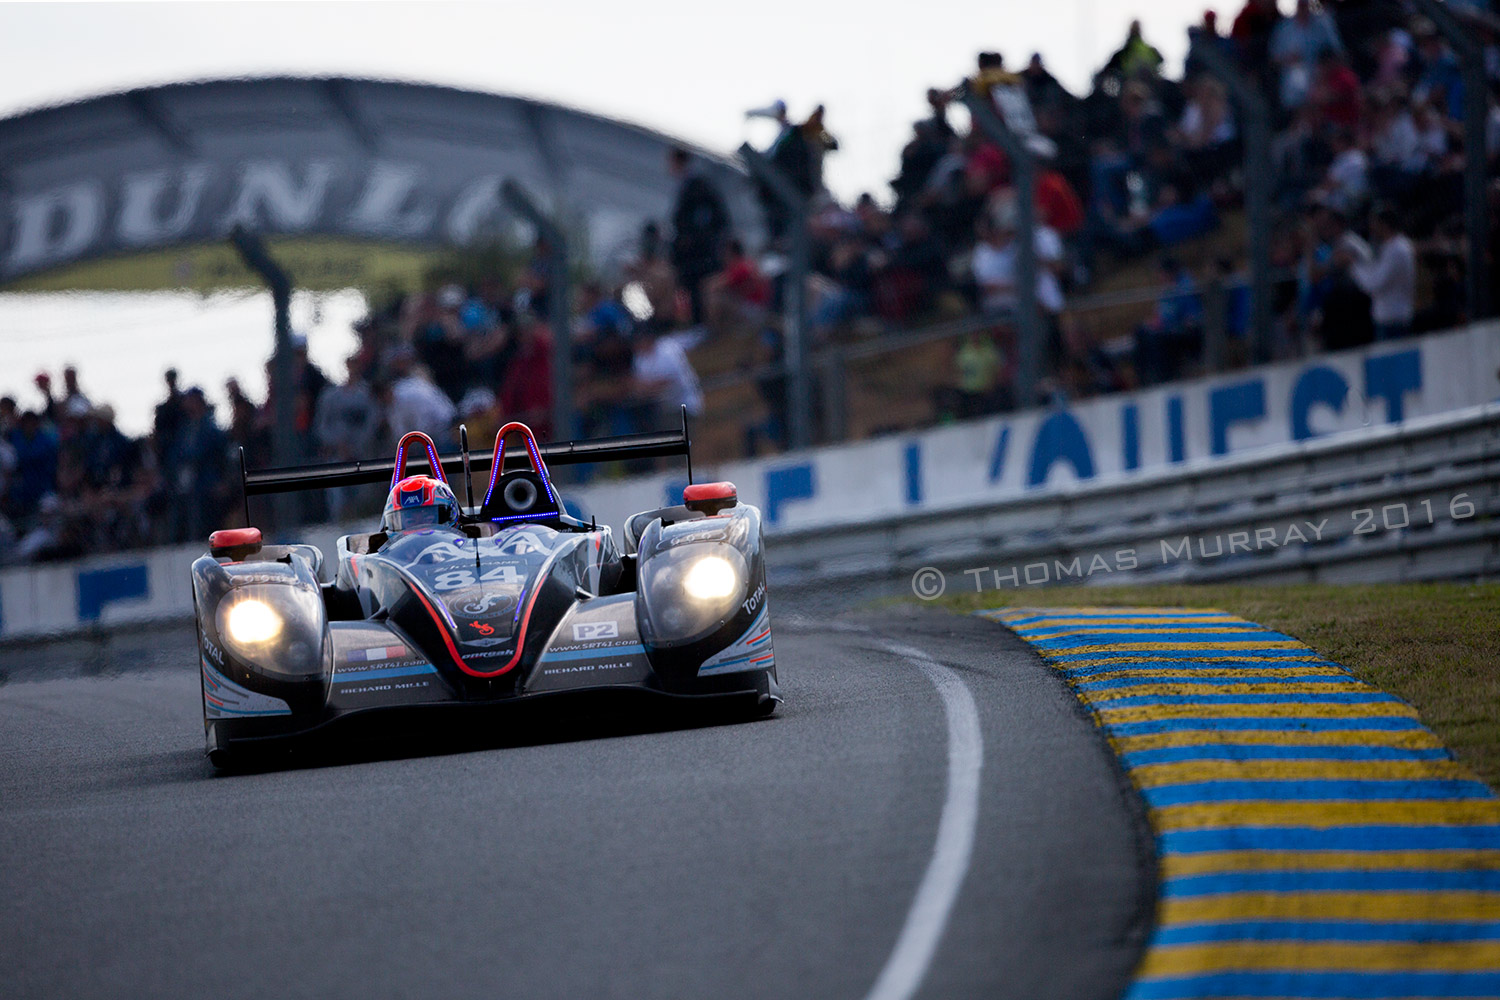 Fred Sausset driving the Oak Racing LMP2 Morgan on approach to Tetre Rouge in the 2016 Le Mans 24